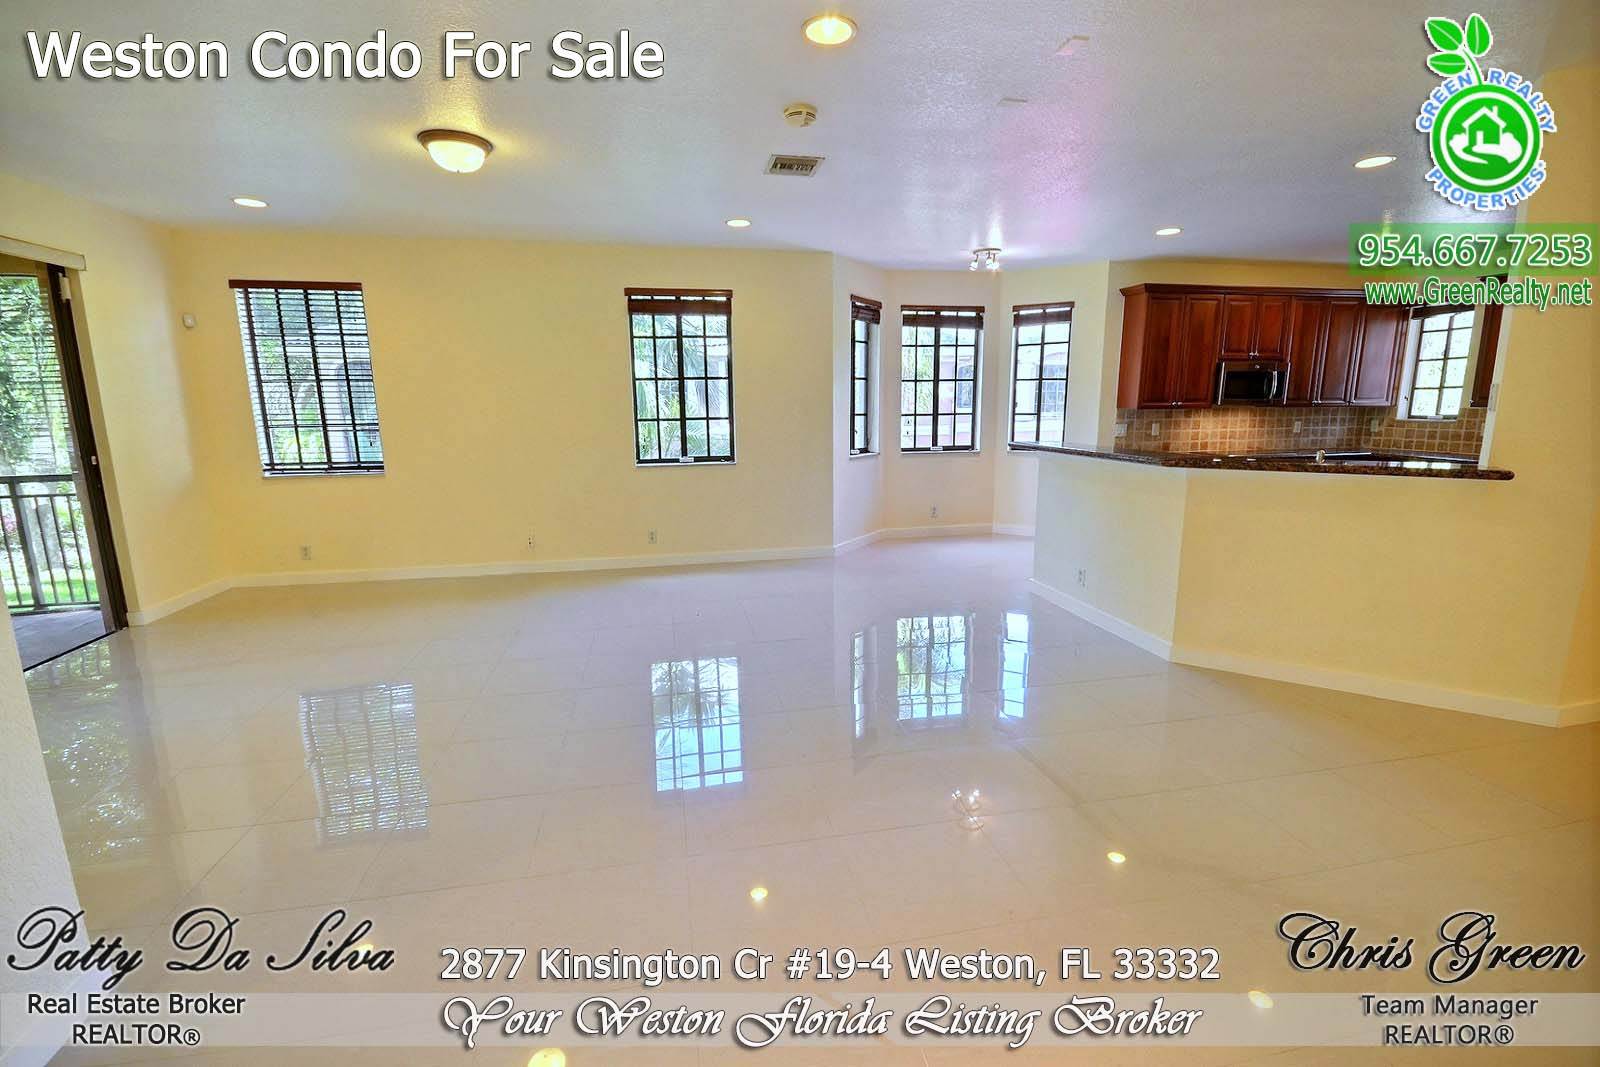 12 Homes For Sale in Weston Florida (12)